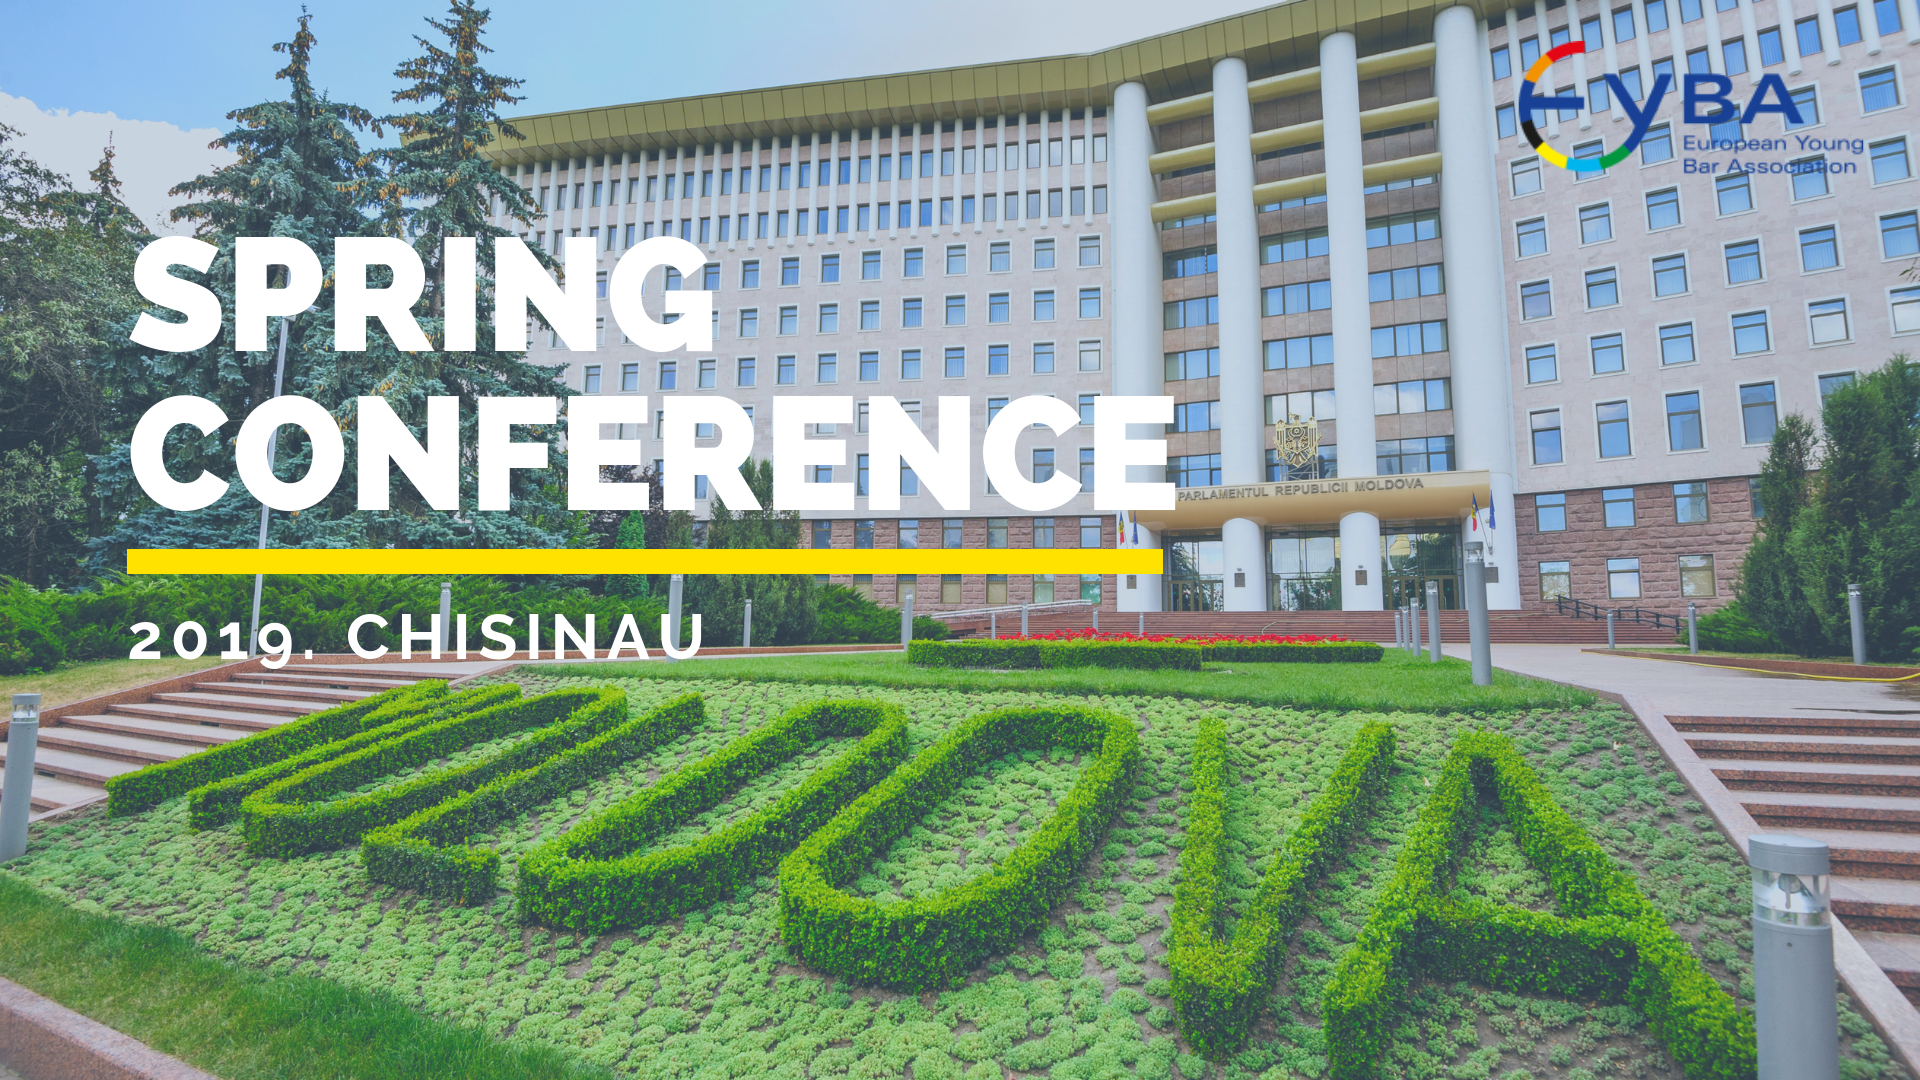 Spring Conference 2019 – Chisinau